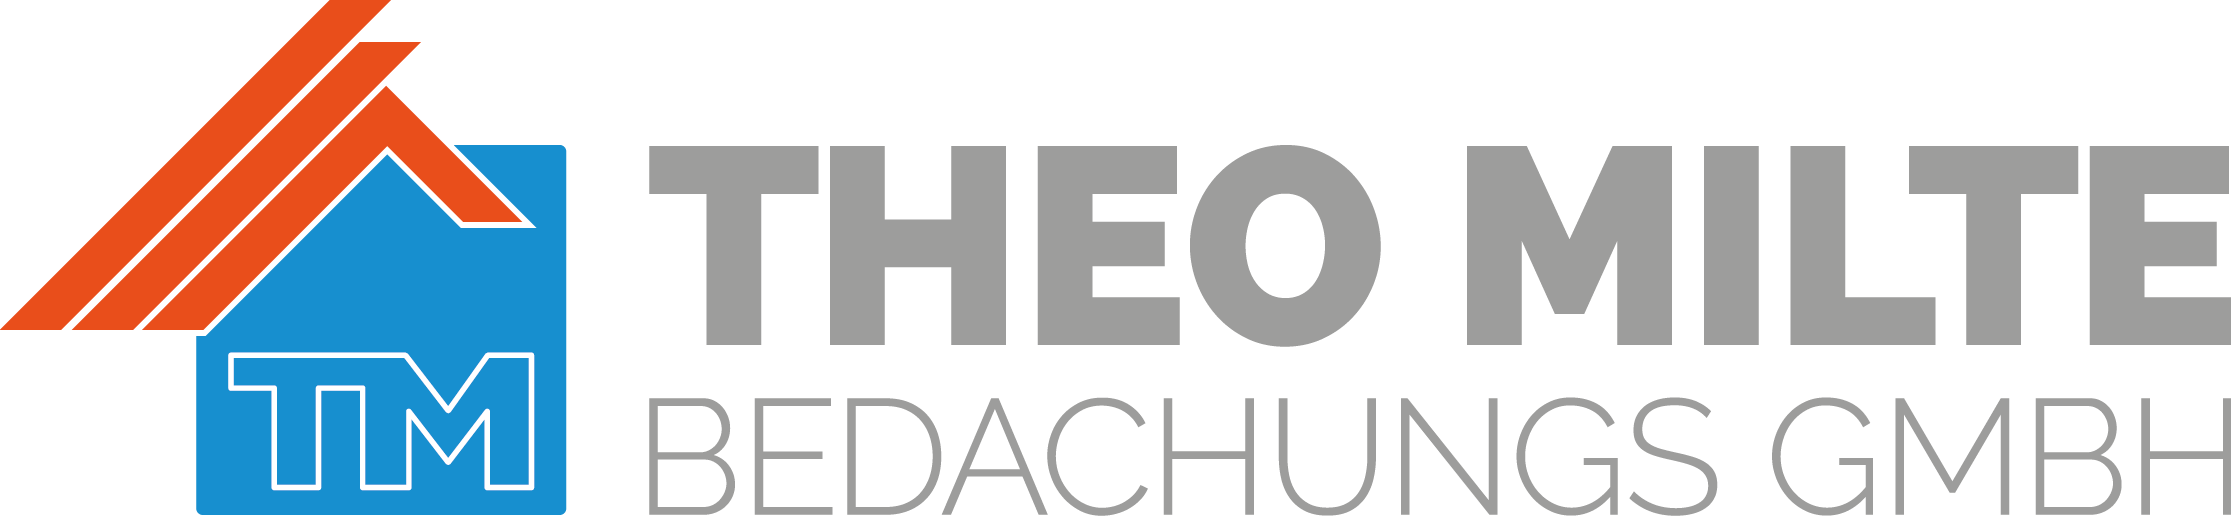 Theo Milte Bedachungs GmbH